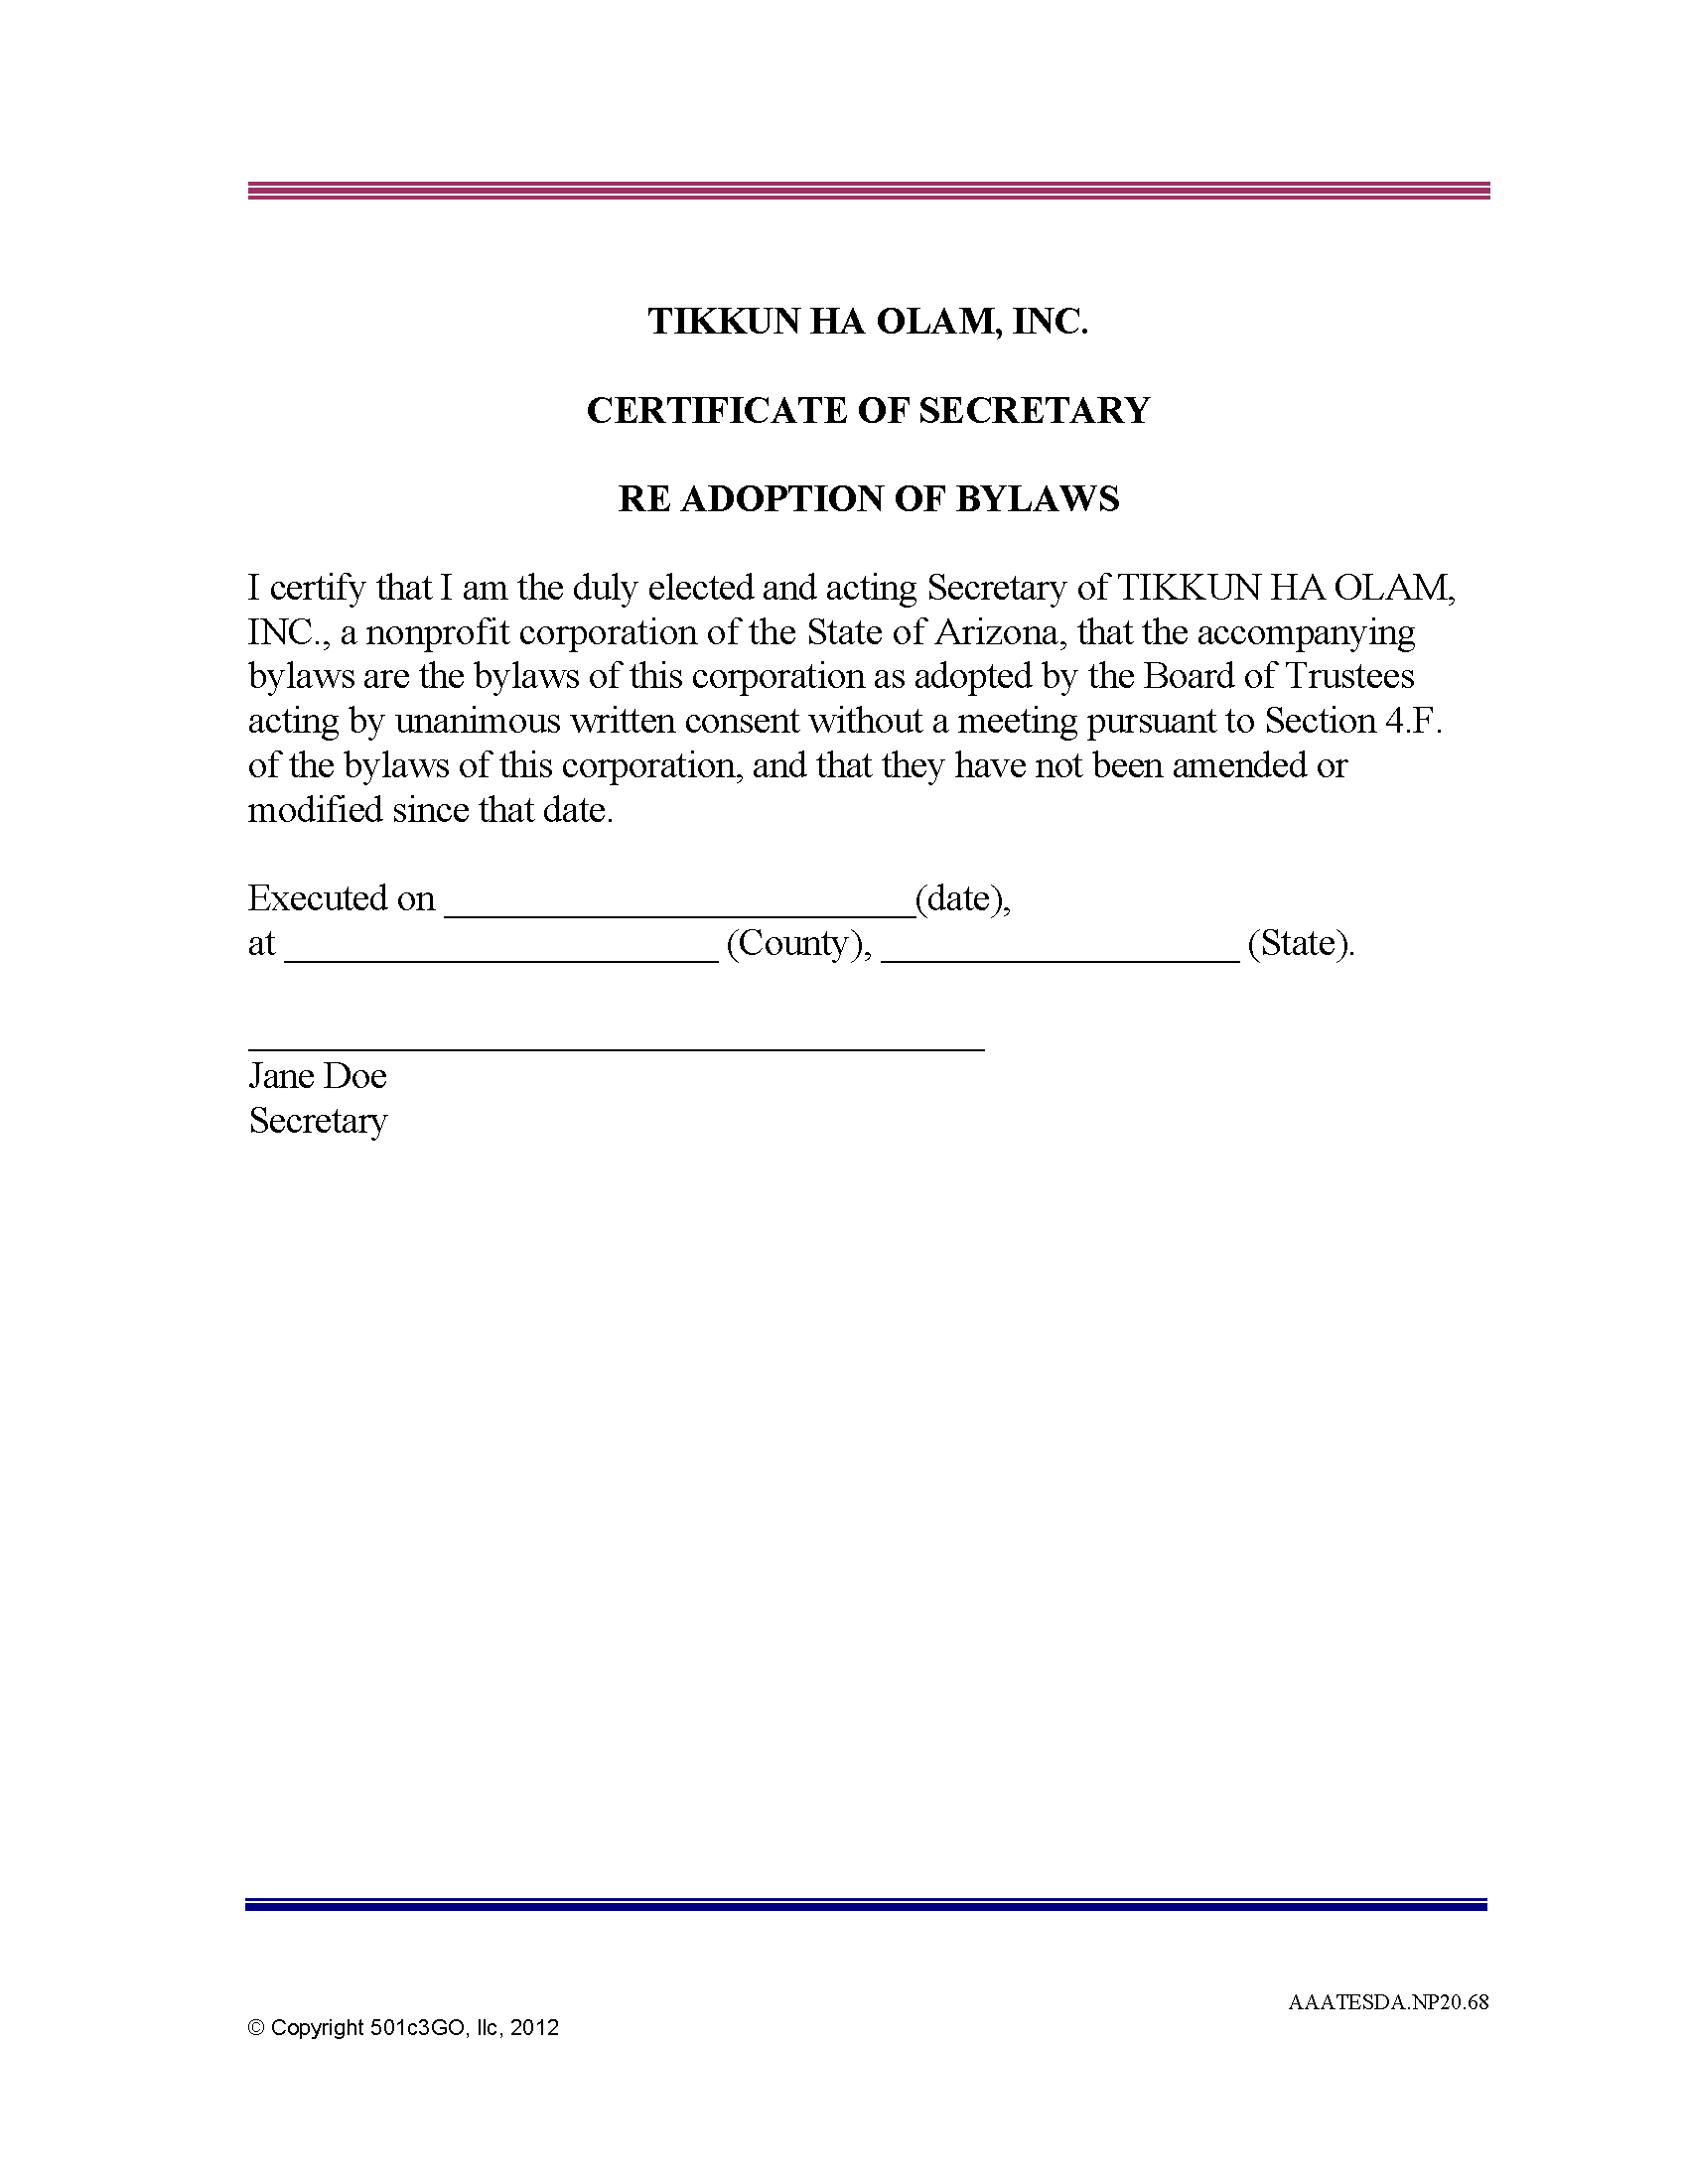 Certificate Of Secretary Re Adoption Of Bylaws   501C3Go Within Corporate Secretary Certificate Template